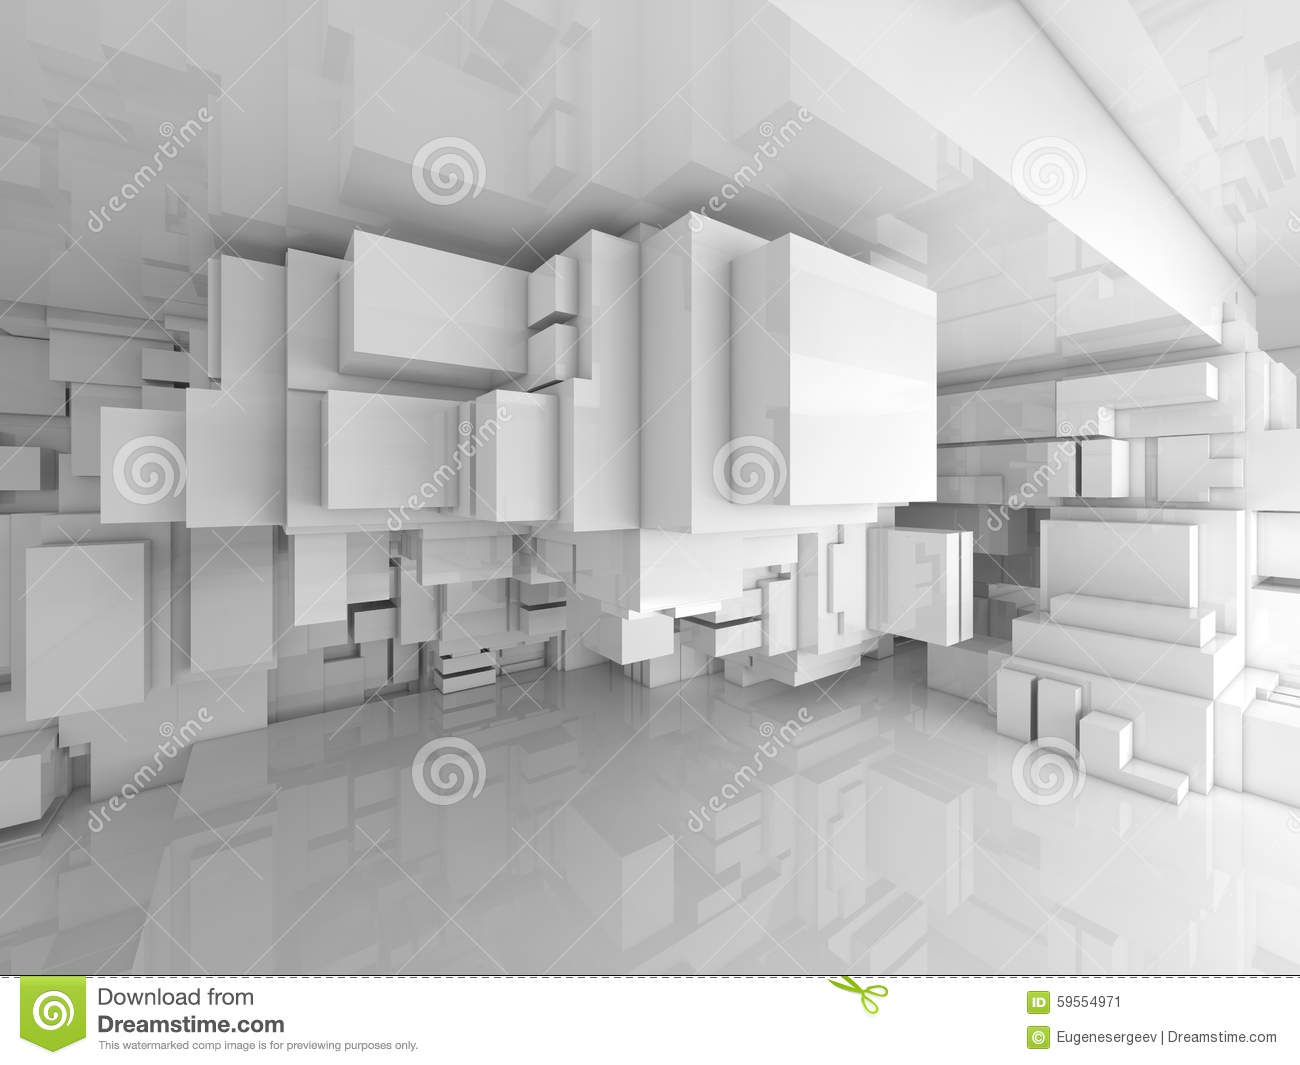 Abstract Empty White High Tech Room 3d Interior Stock Illustration Image 59554971